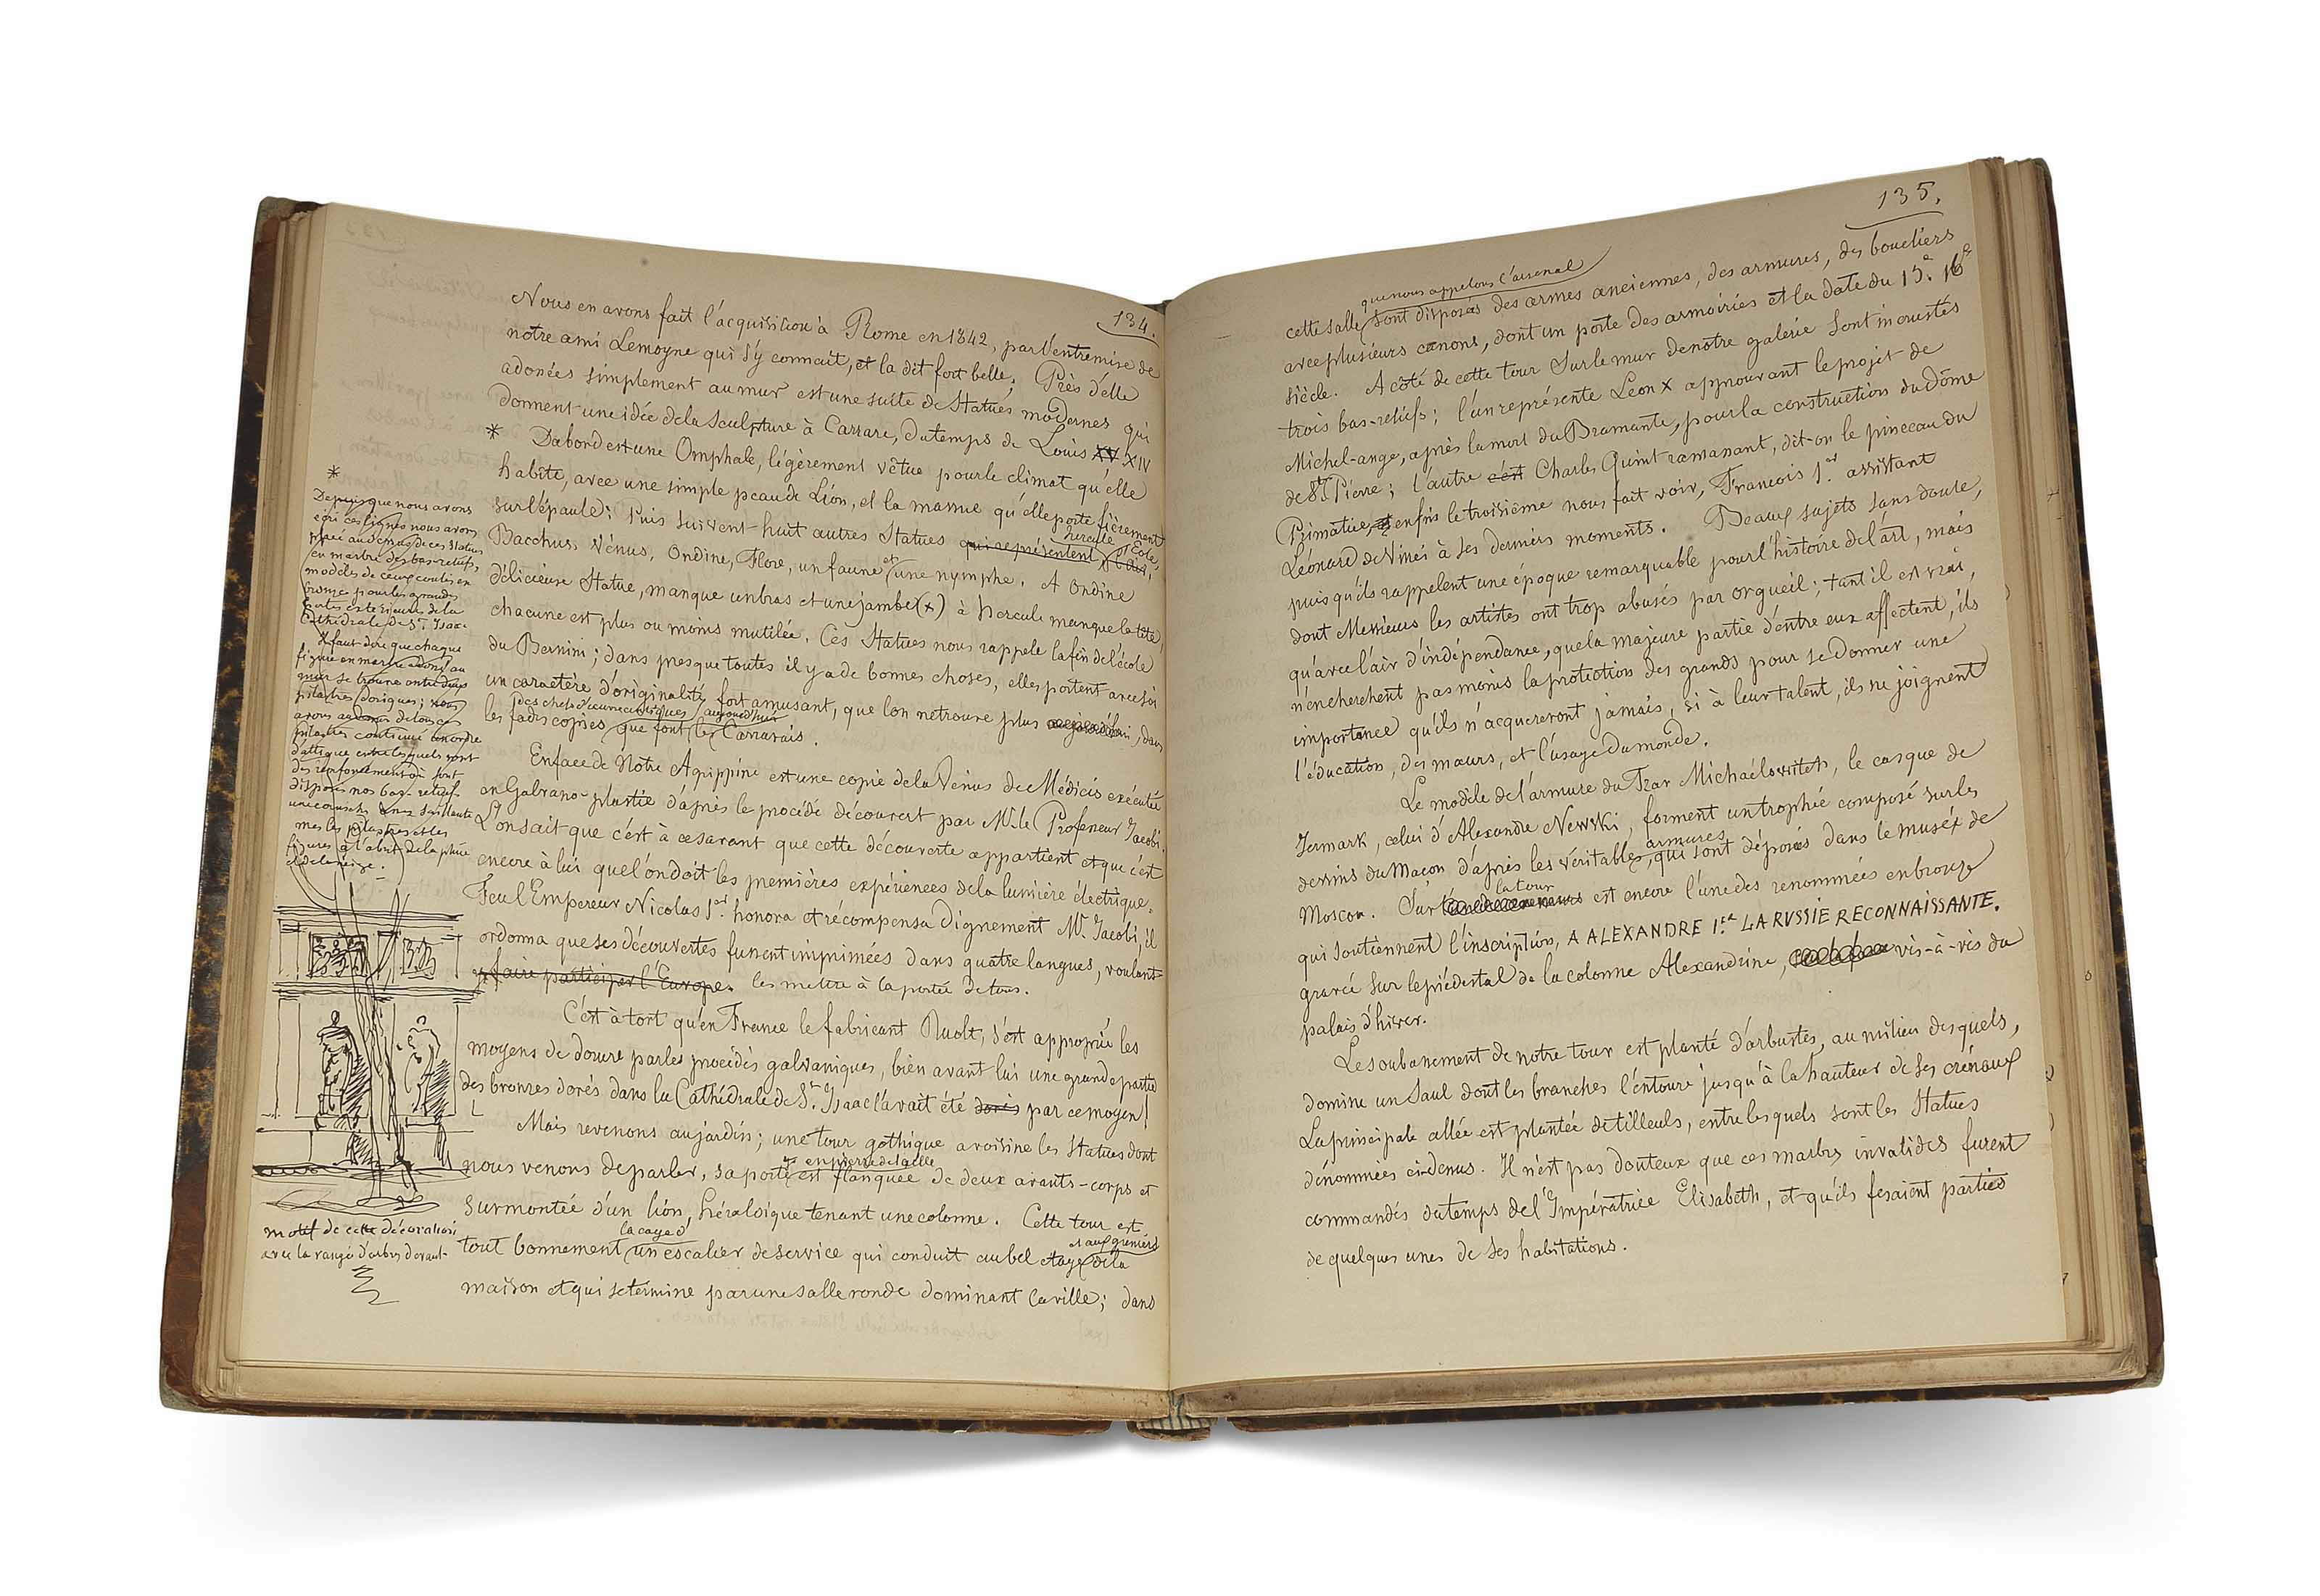 MONTFERRAND, Auguste de (1786-1858). Autograph manuscript, 'Description de l'habitation d'un Maçon, Tome 1', with extensive revisions, Paris, 1853.